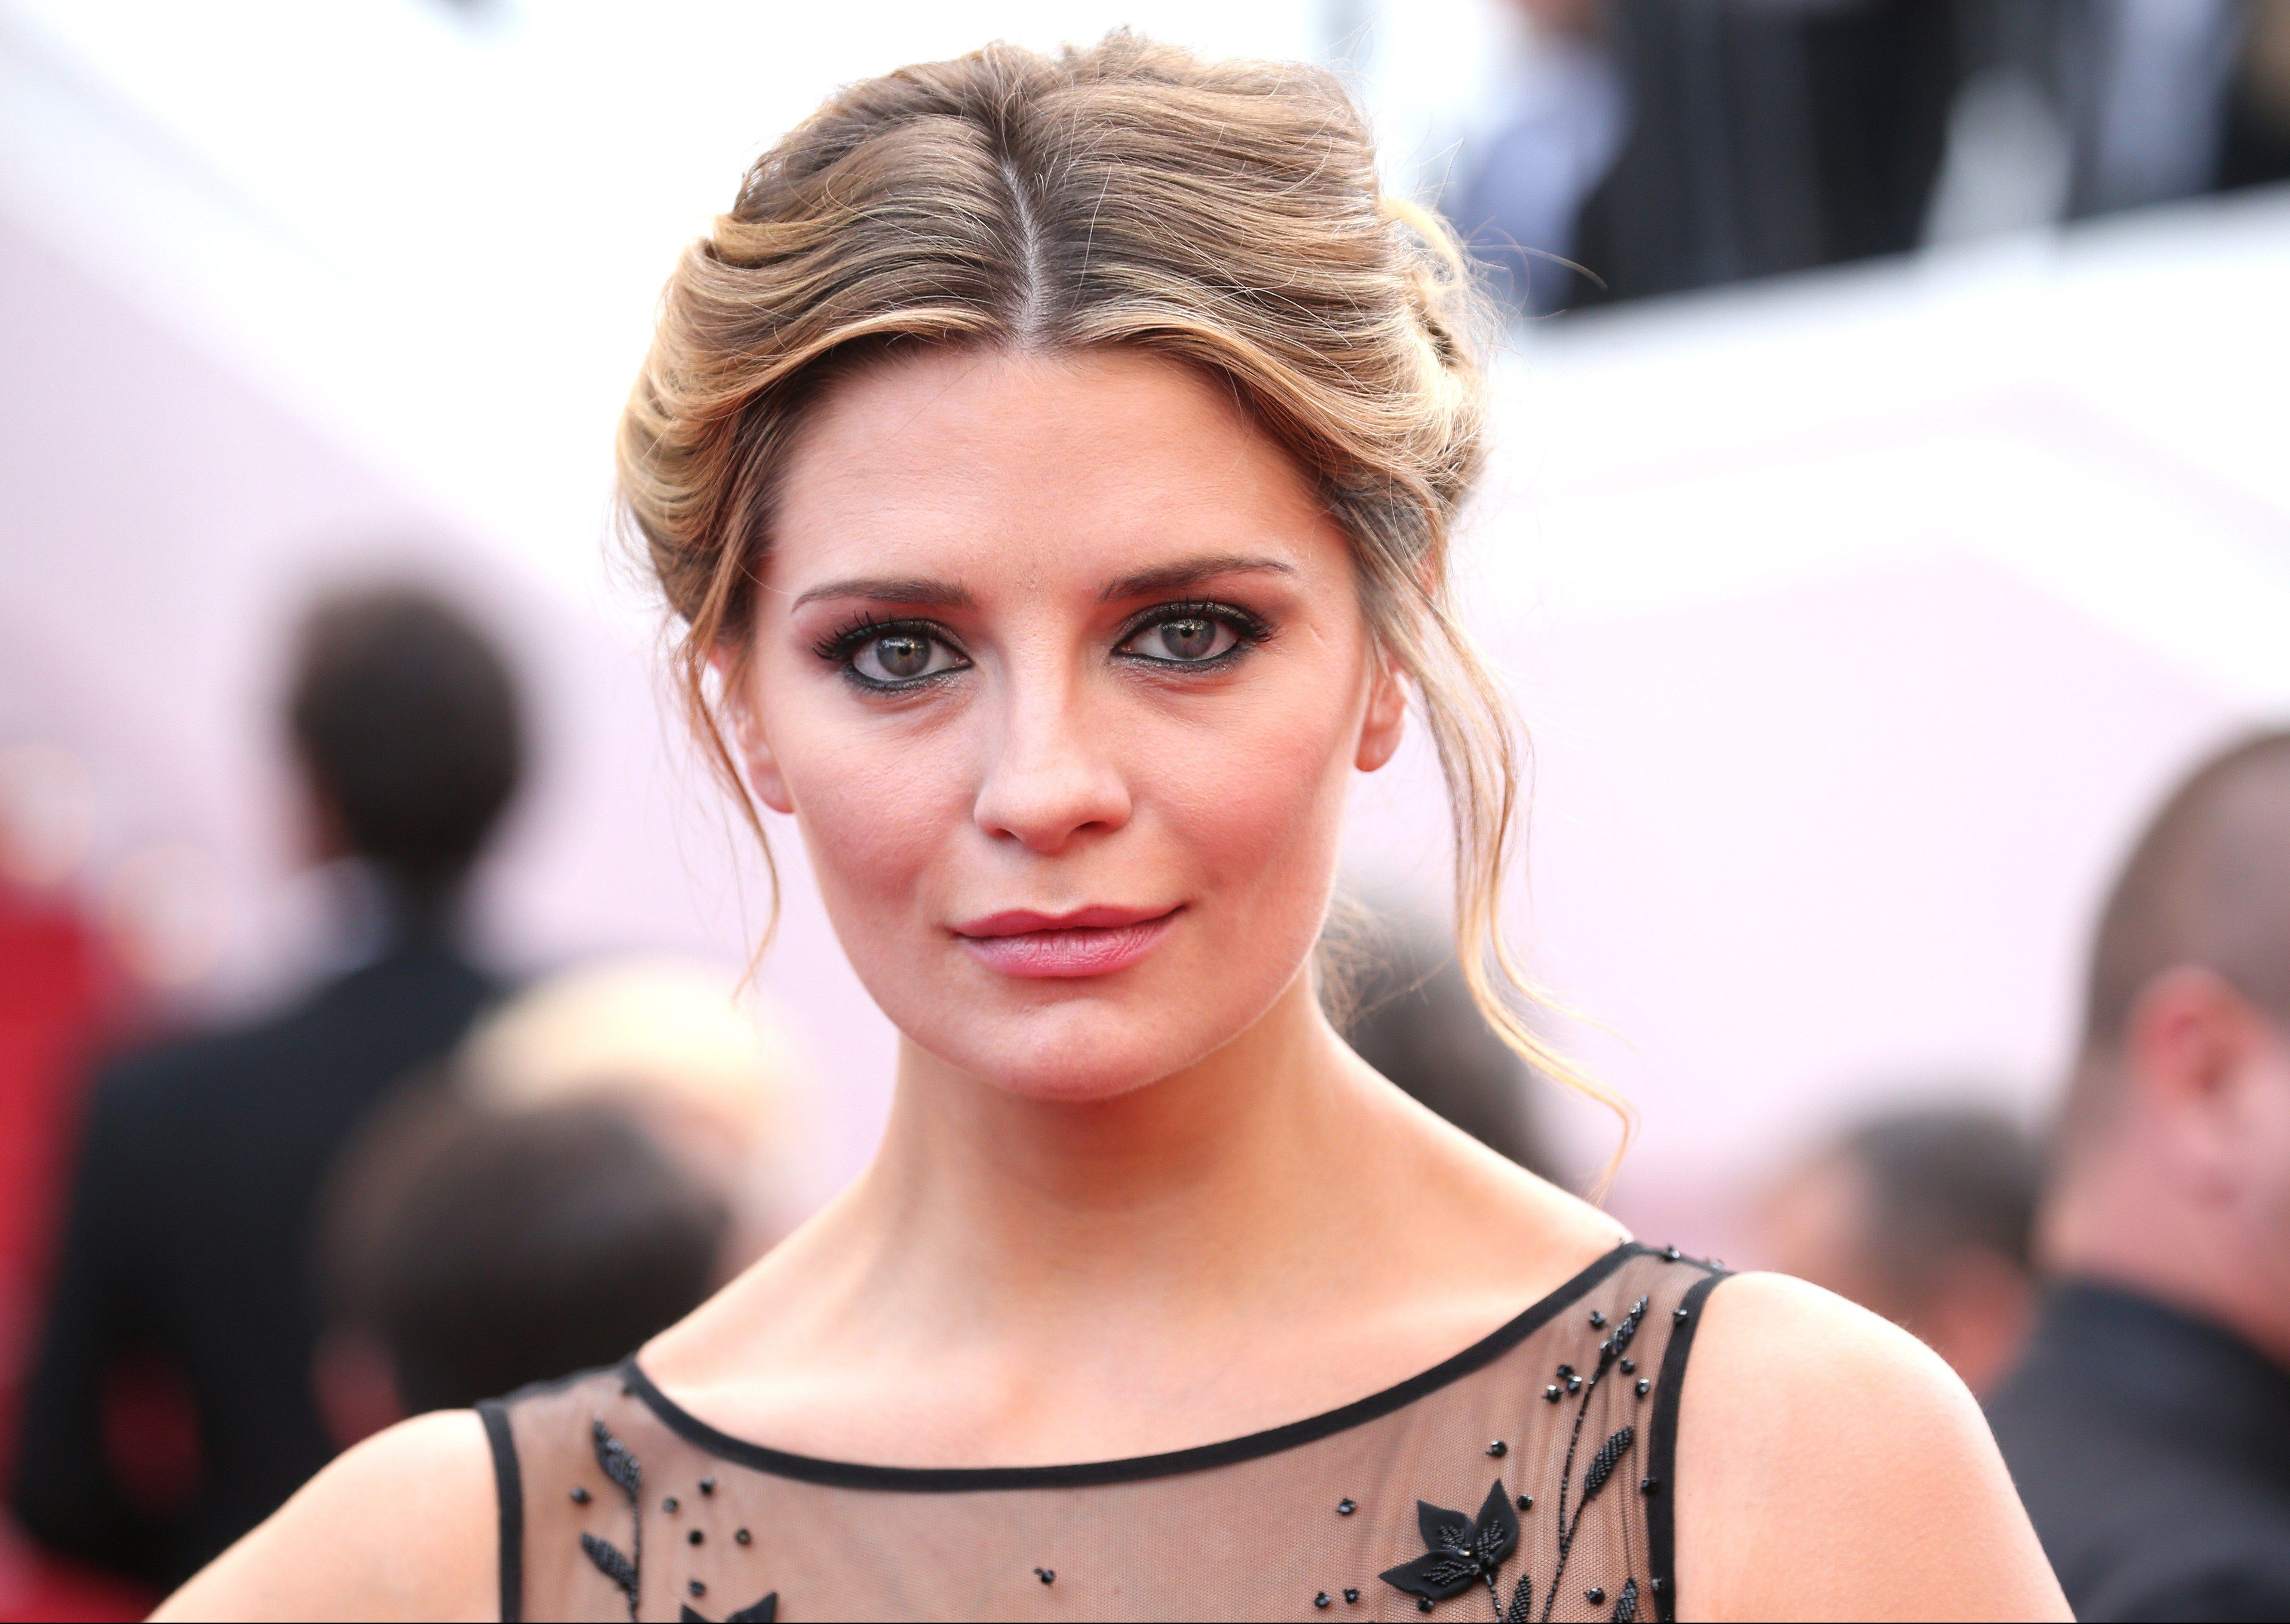 """CANNES, FRANCE - MAY 16: Actress Mischa Barton attends the """"Loving"""" premiere during the 69th annual Cannes Film Festival at the Palais des Festivals on May 16, 2016 in Cannes, France. (Photo by Gisela Schober/Getty Images)"""